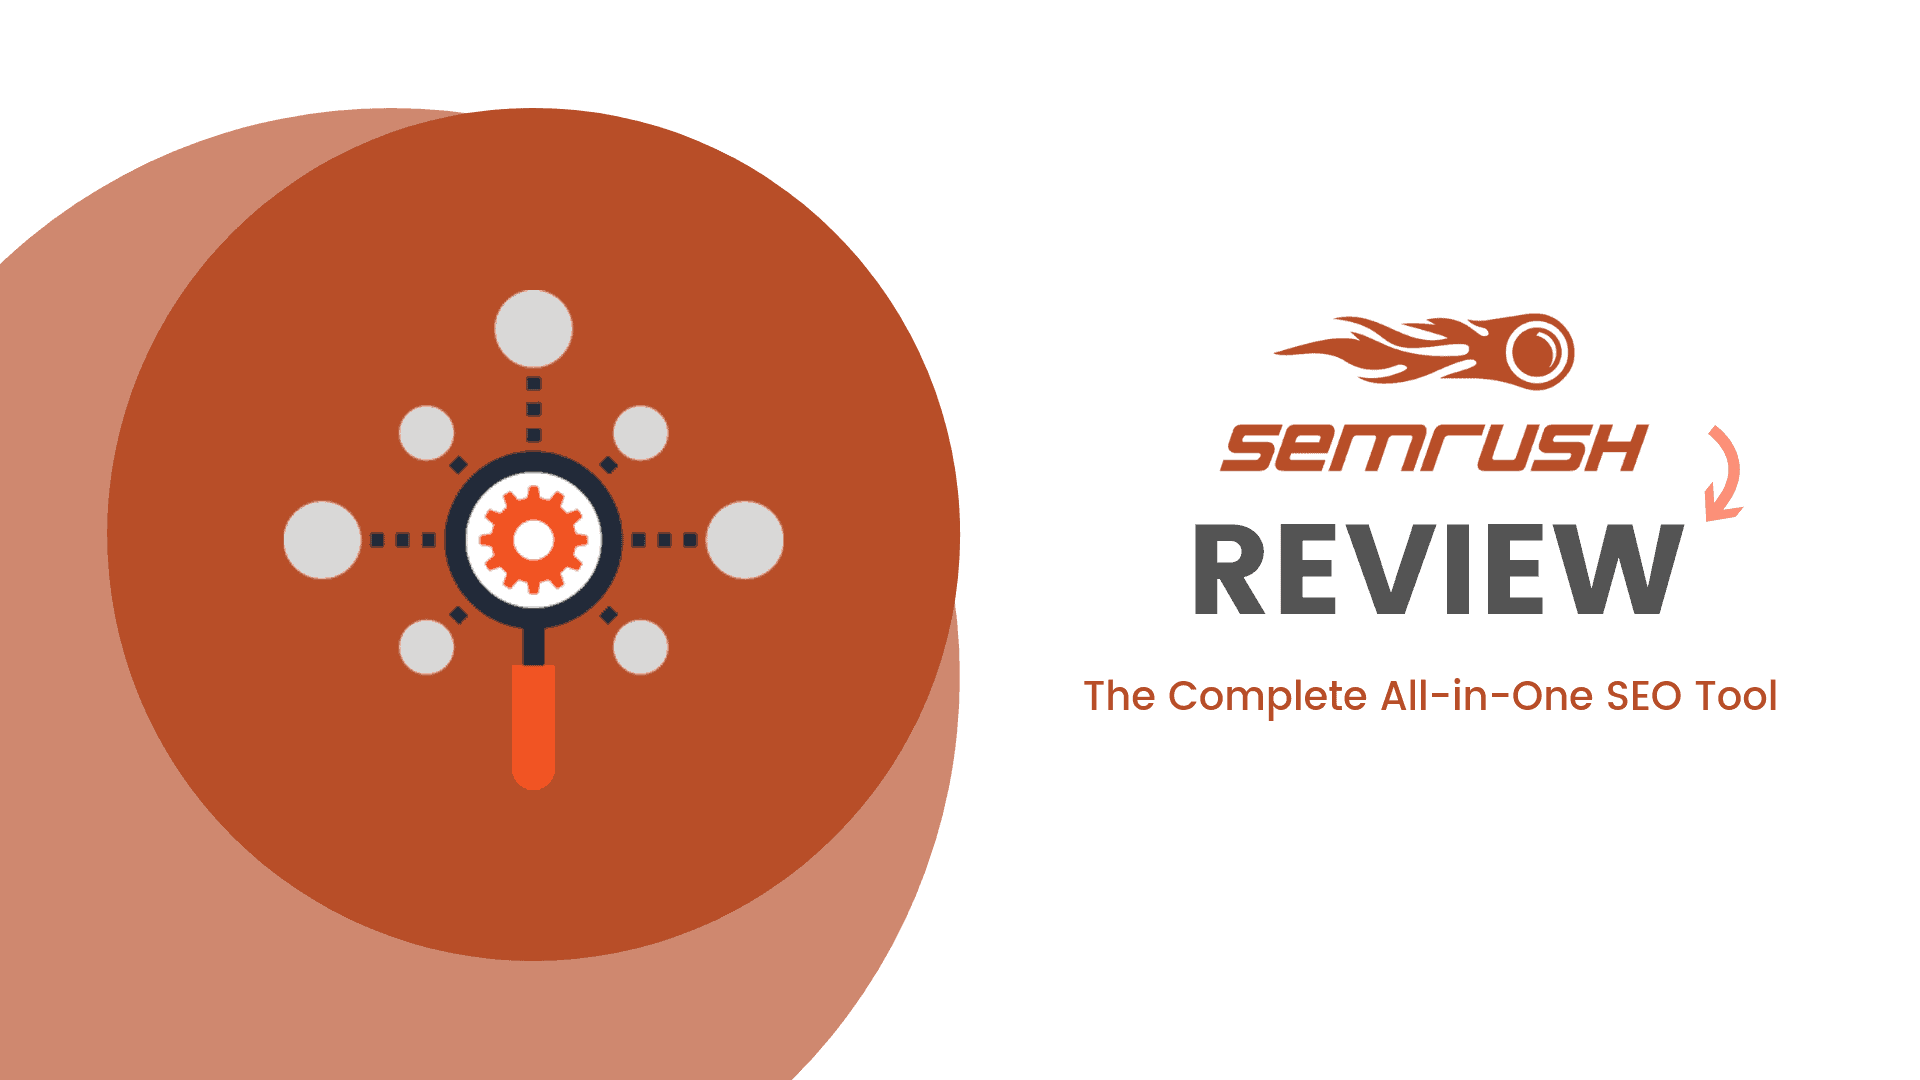 Buy Semrush Discount Coupon Printable April 2020